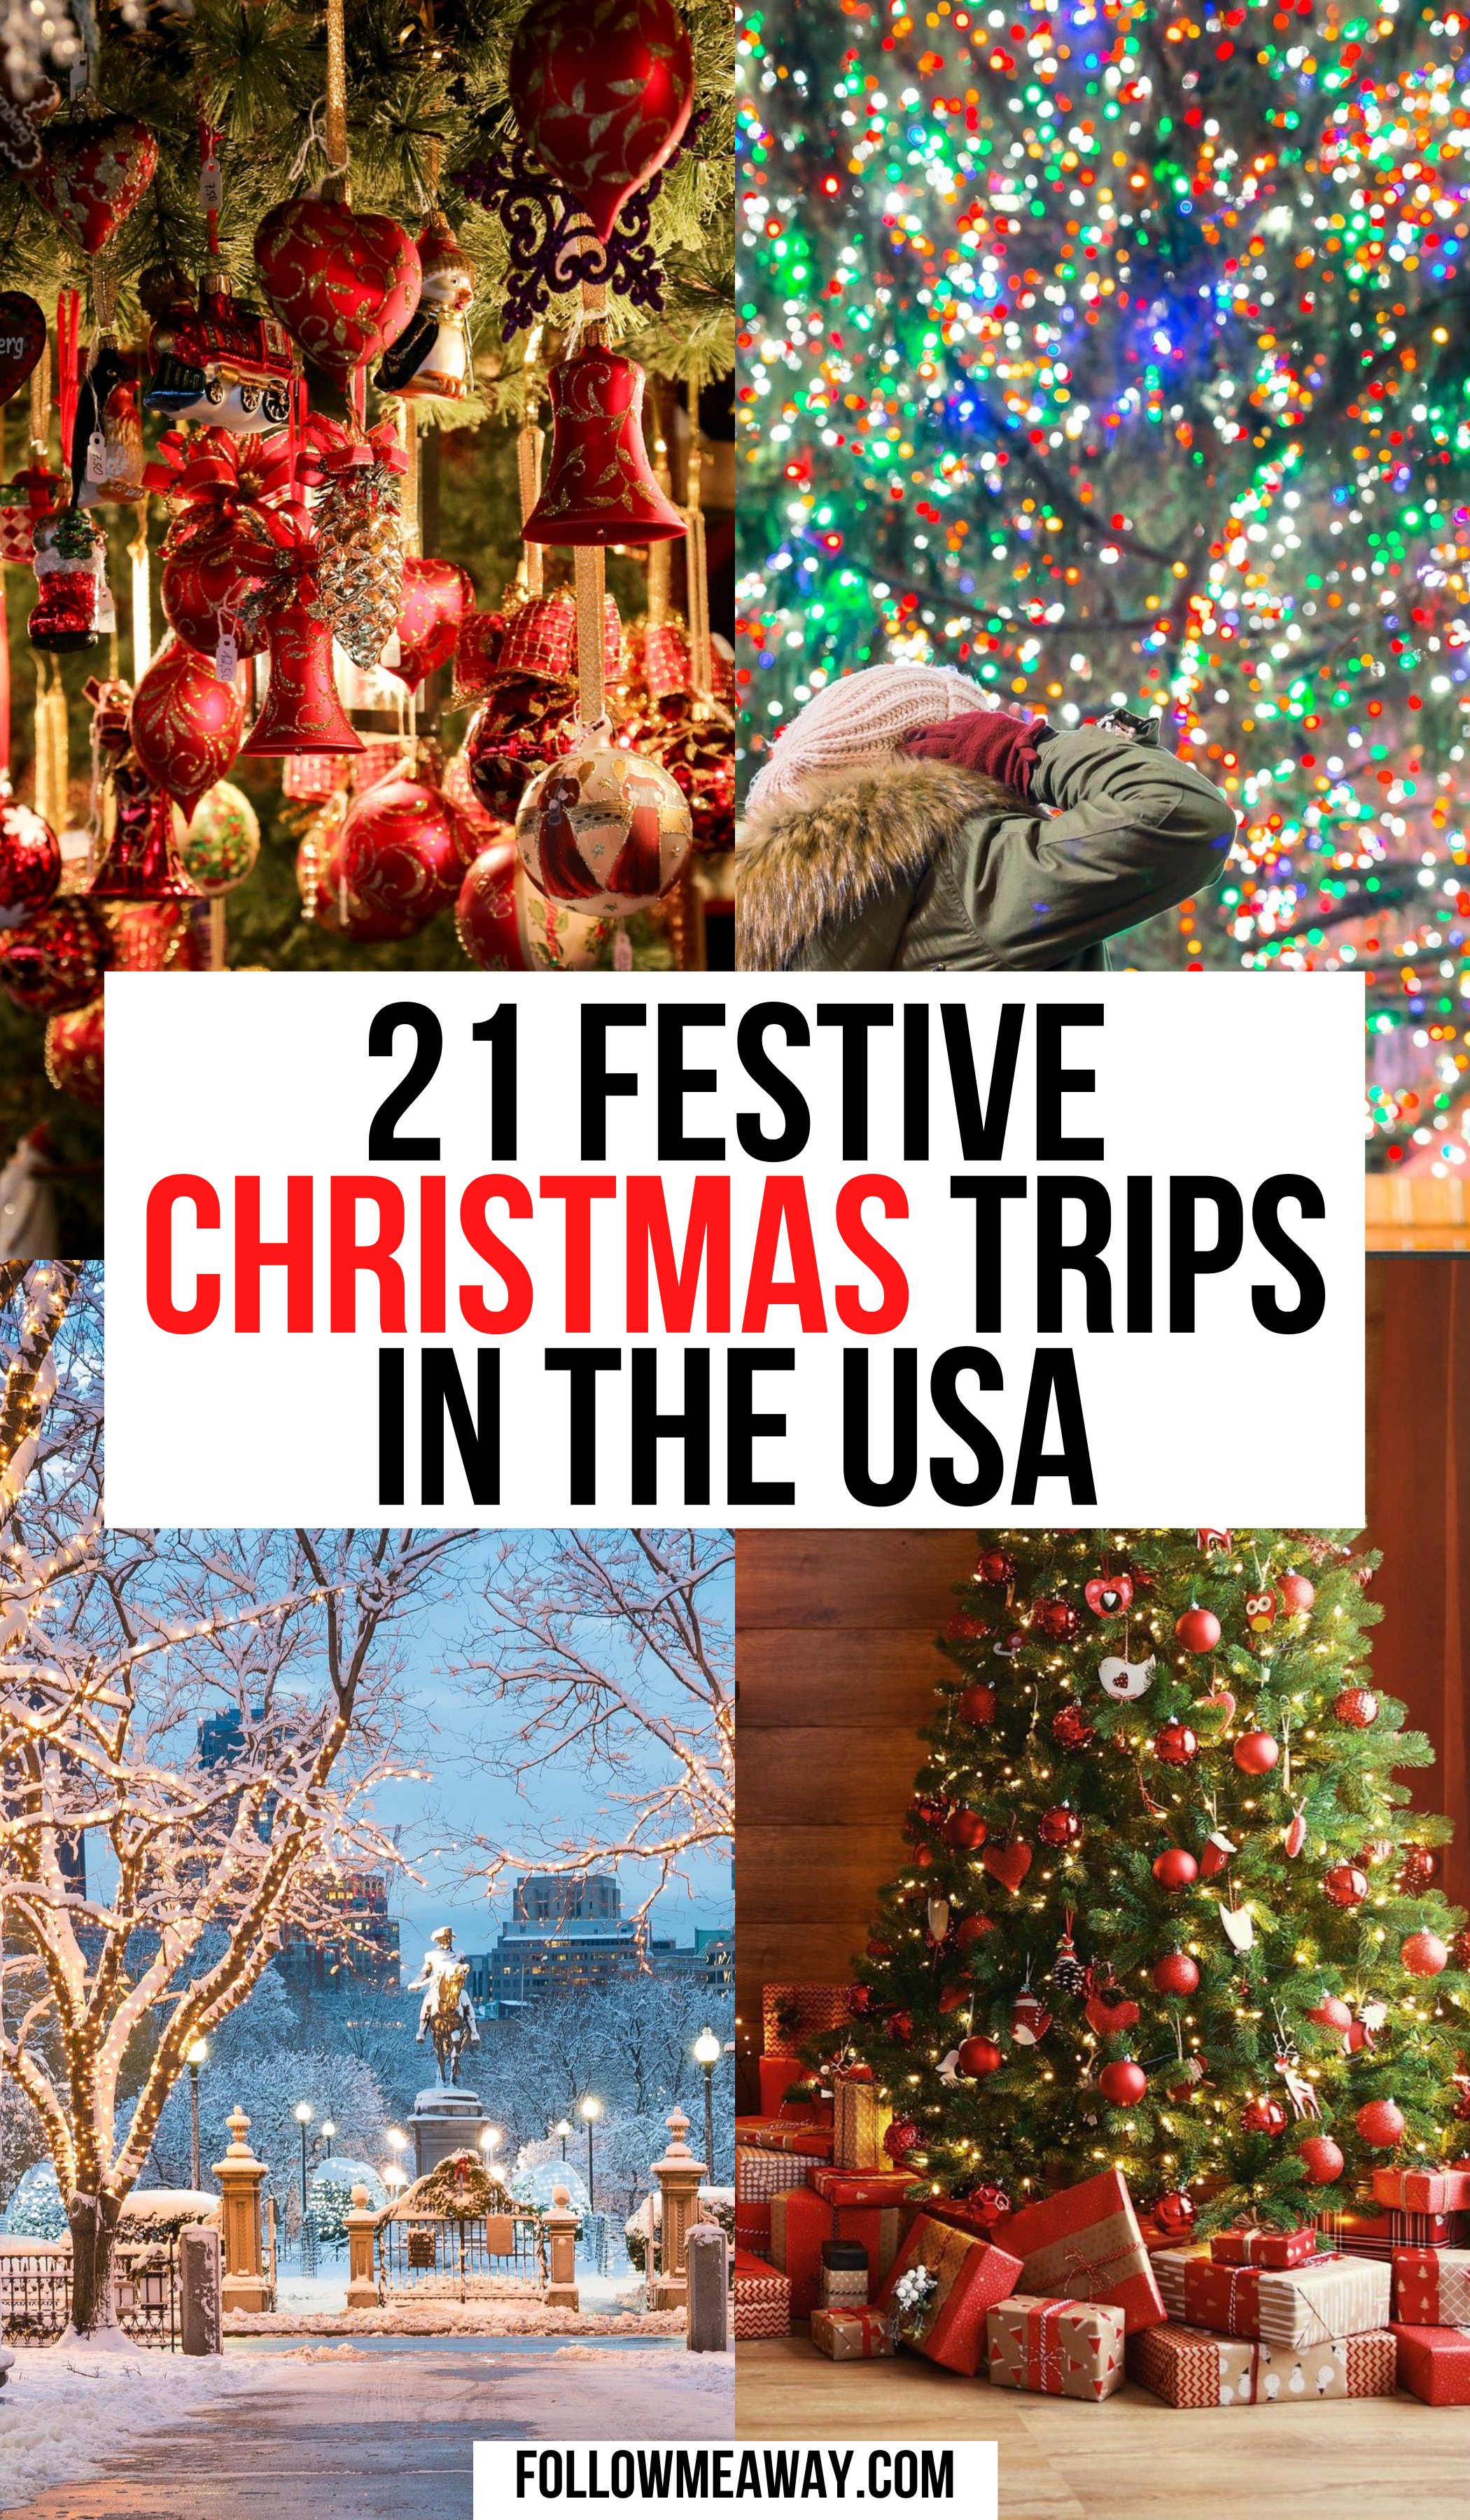 21 Festive Vacation Destinations For Christmas In The Usa Follow Me Away In 2020 Christmas Travel Christmas Destinations Winter Travel Destinations